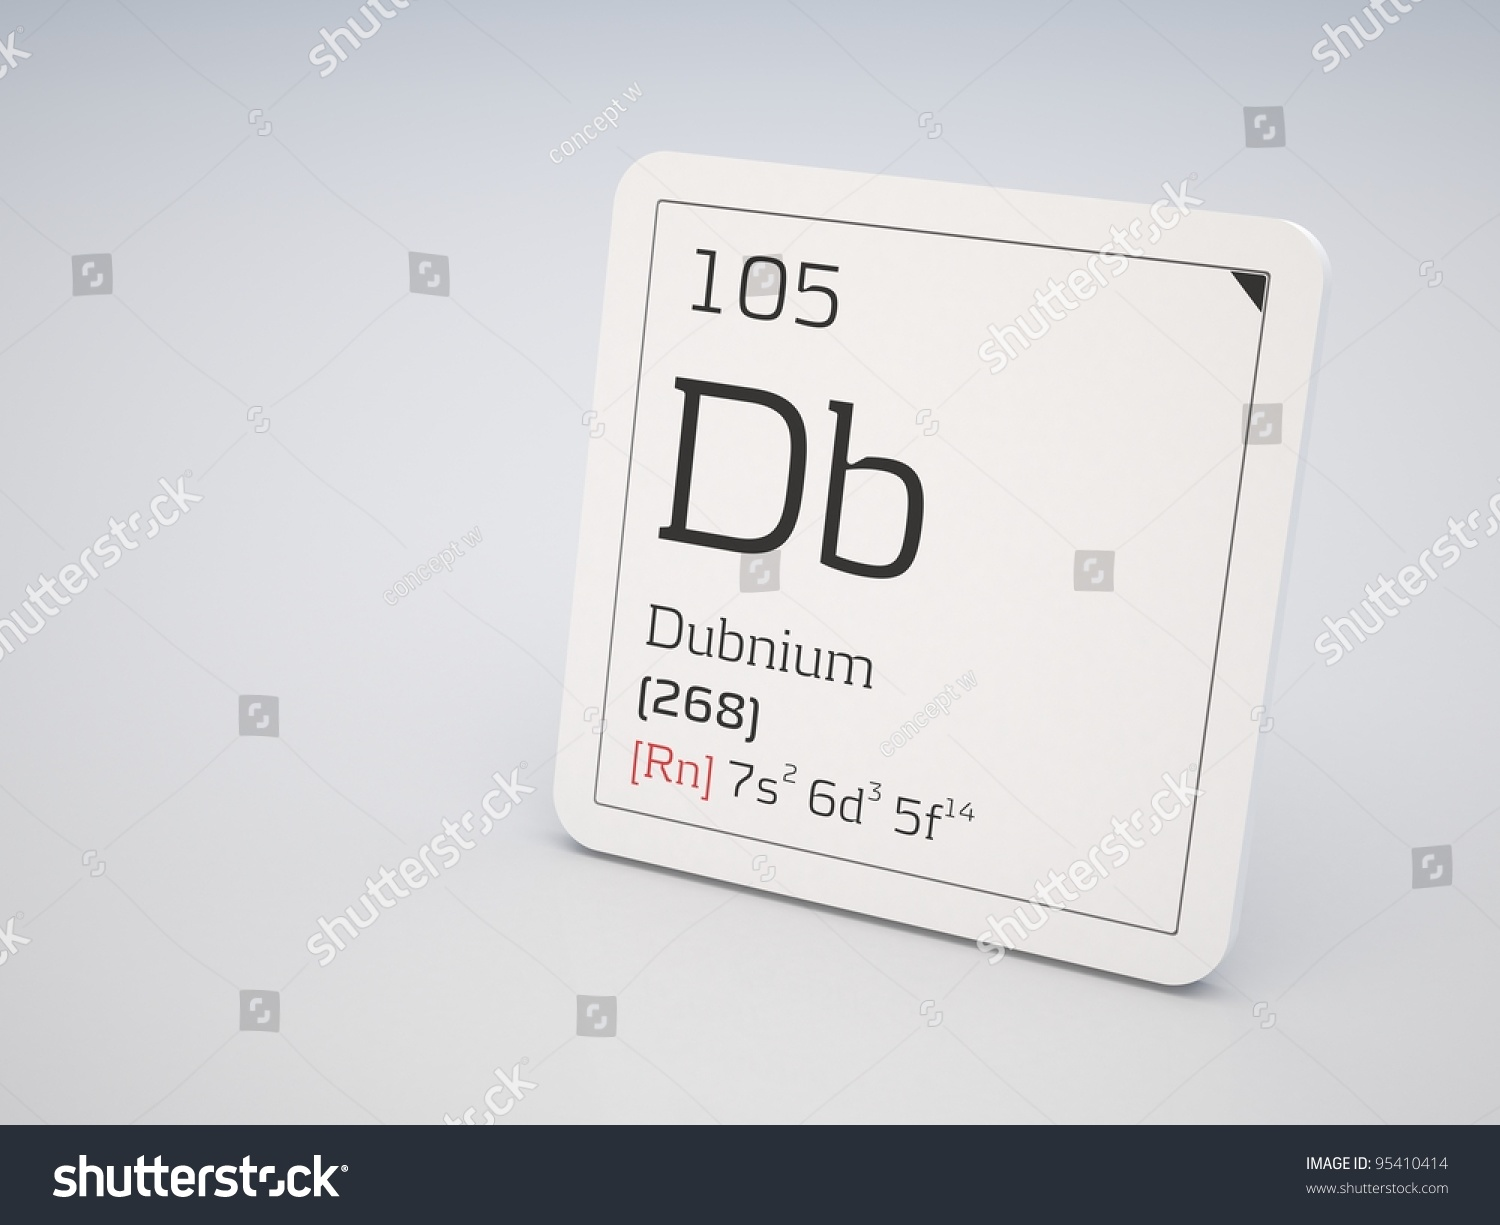 Periodic table db gallery periodic table images periodic table db image collections periodic table images db periodic table choice image periodic table images gamestrikefo Images